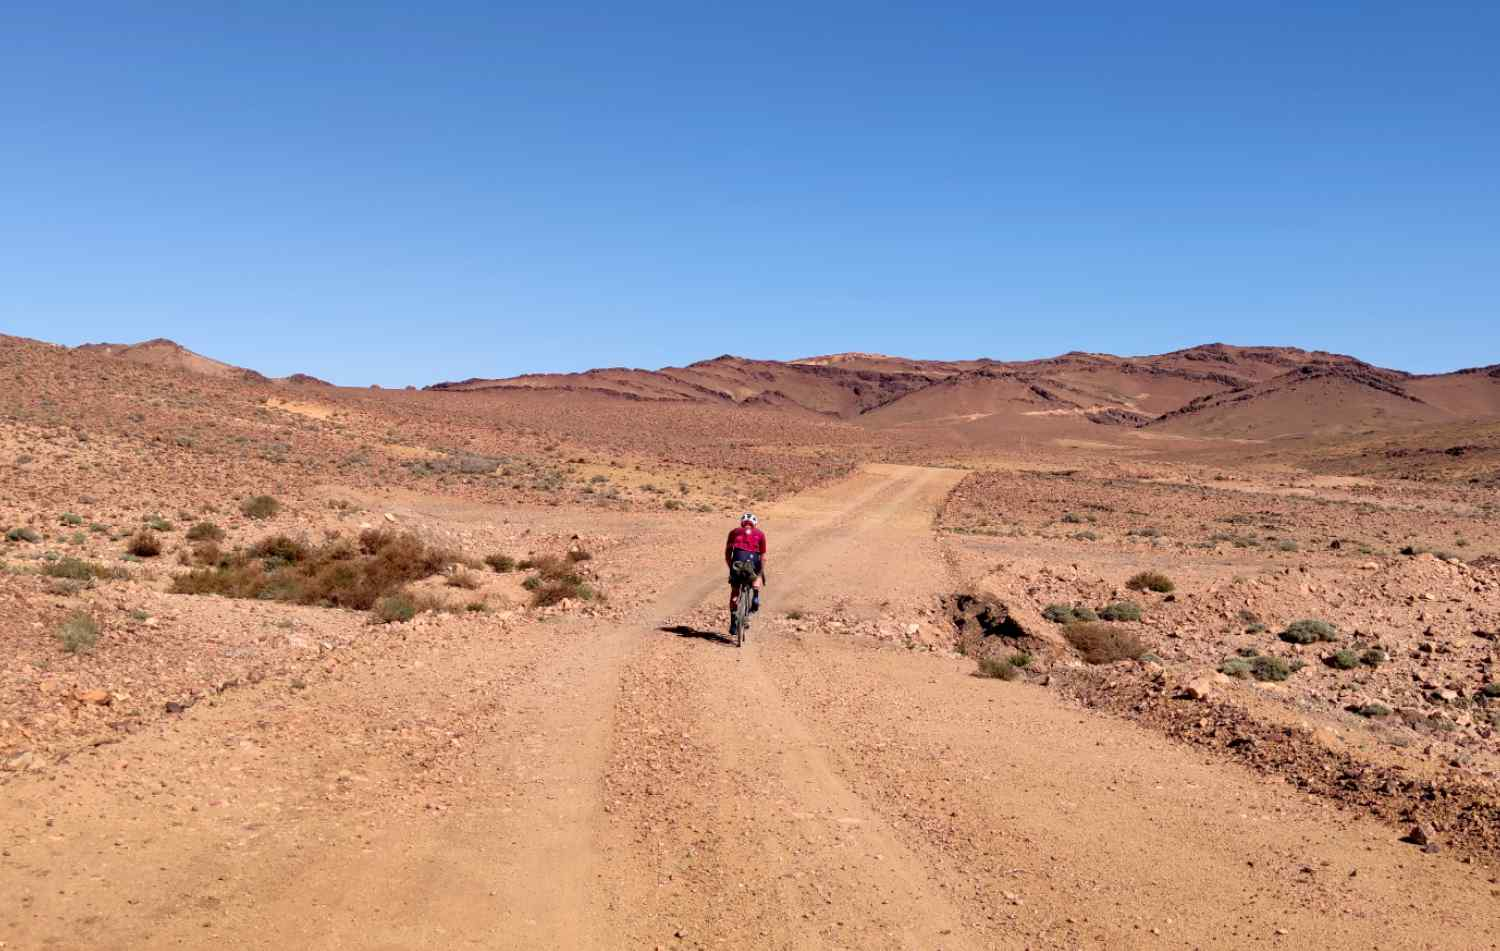 A cyclist in the middle of the desert